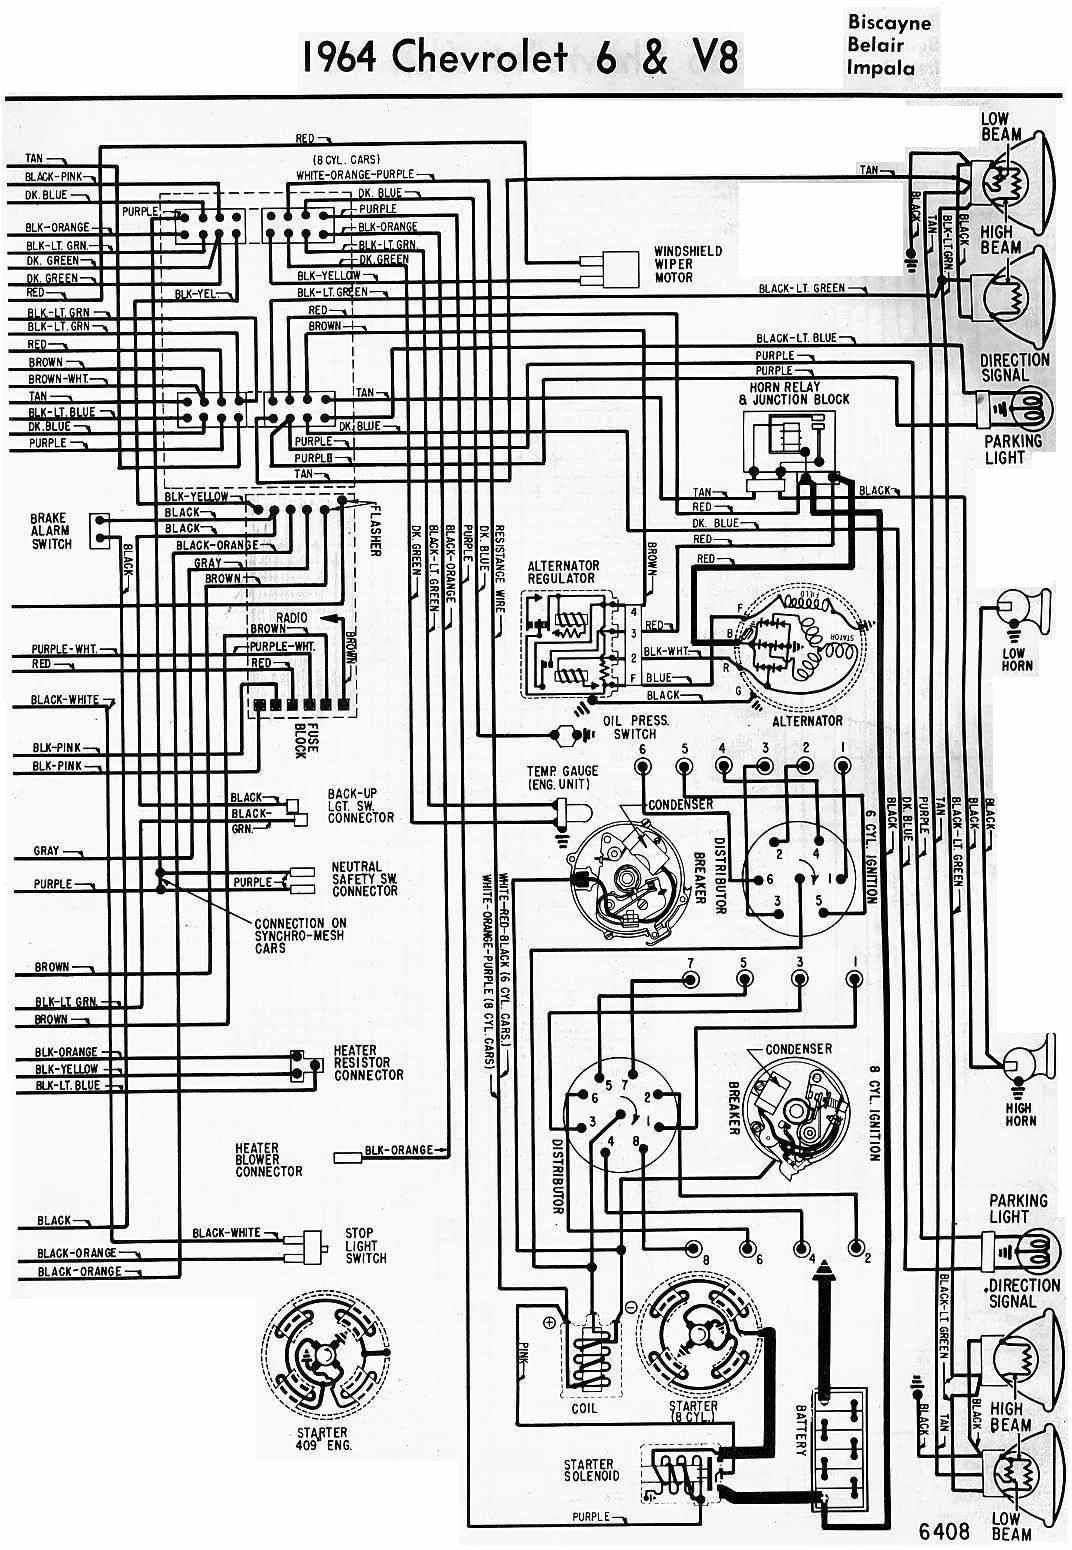 hight resolution of 1964 chevrolet wiring diagram wiring diagram 64 impala wiring diagram wiring diagram reviewgm fuse box diagram